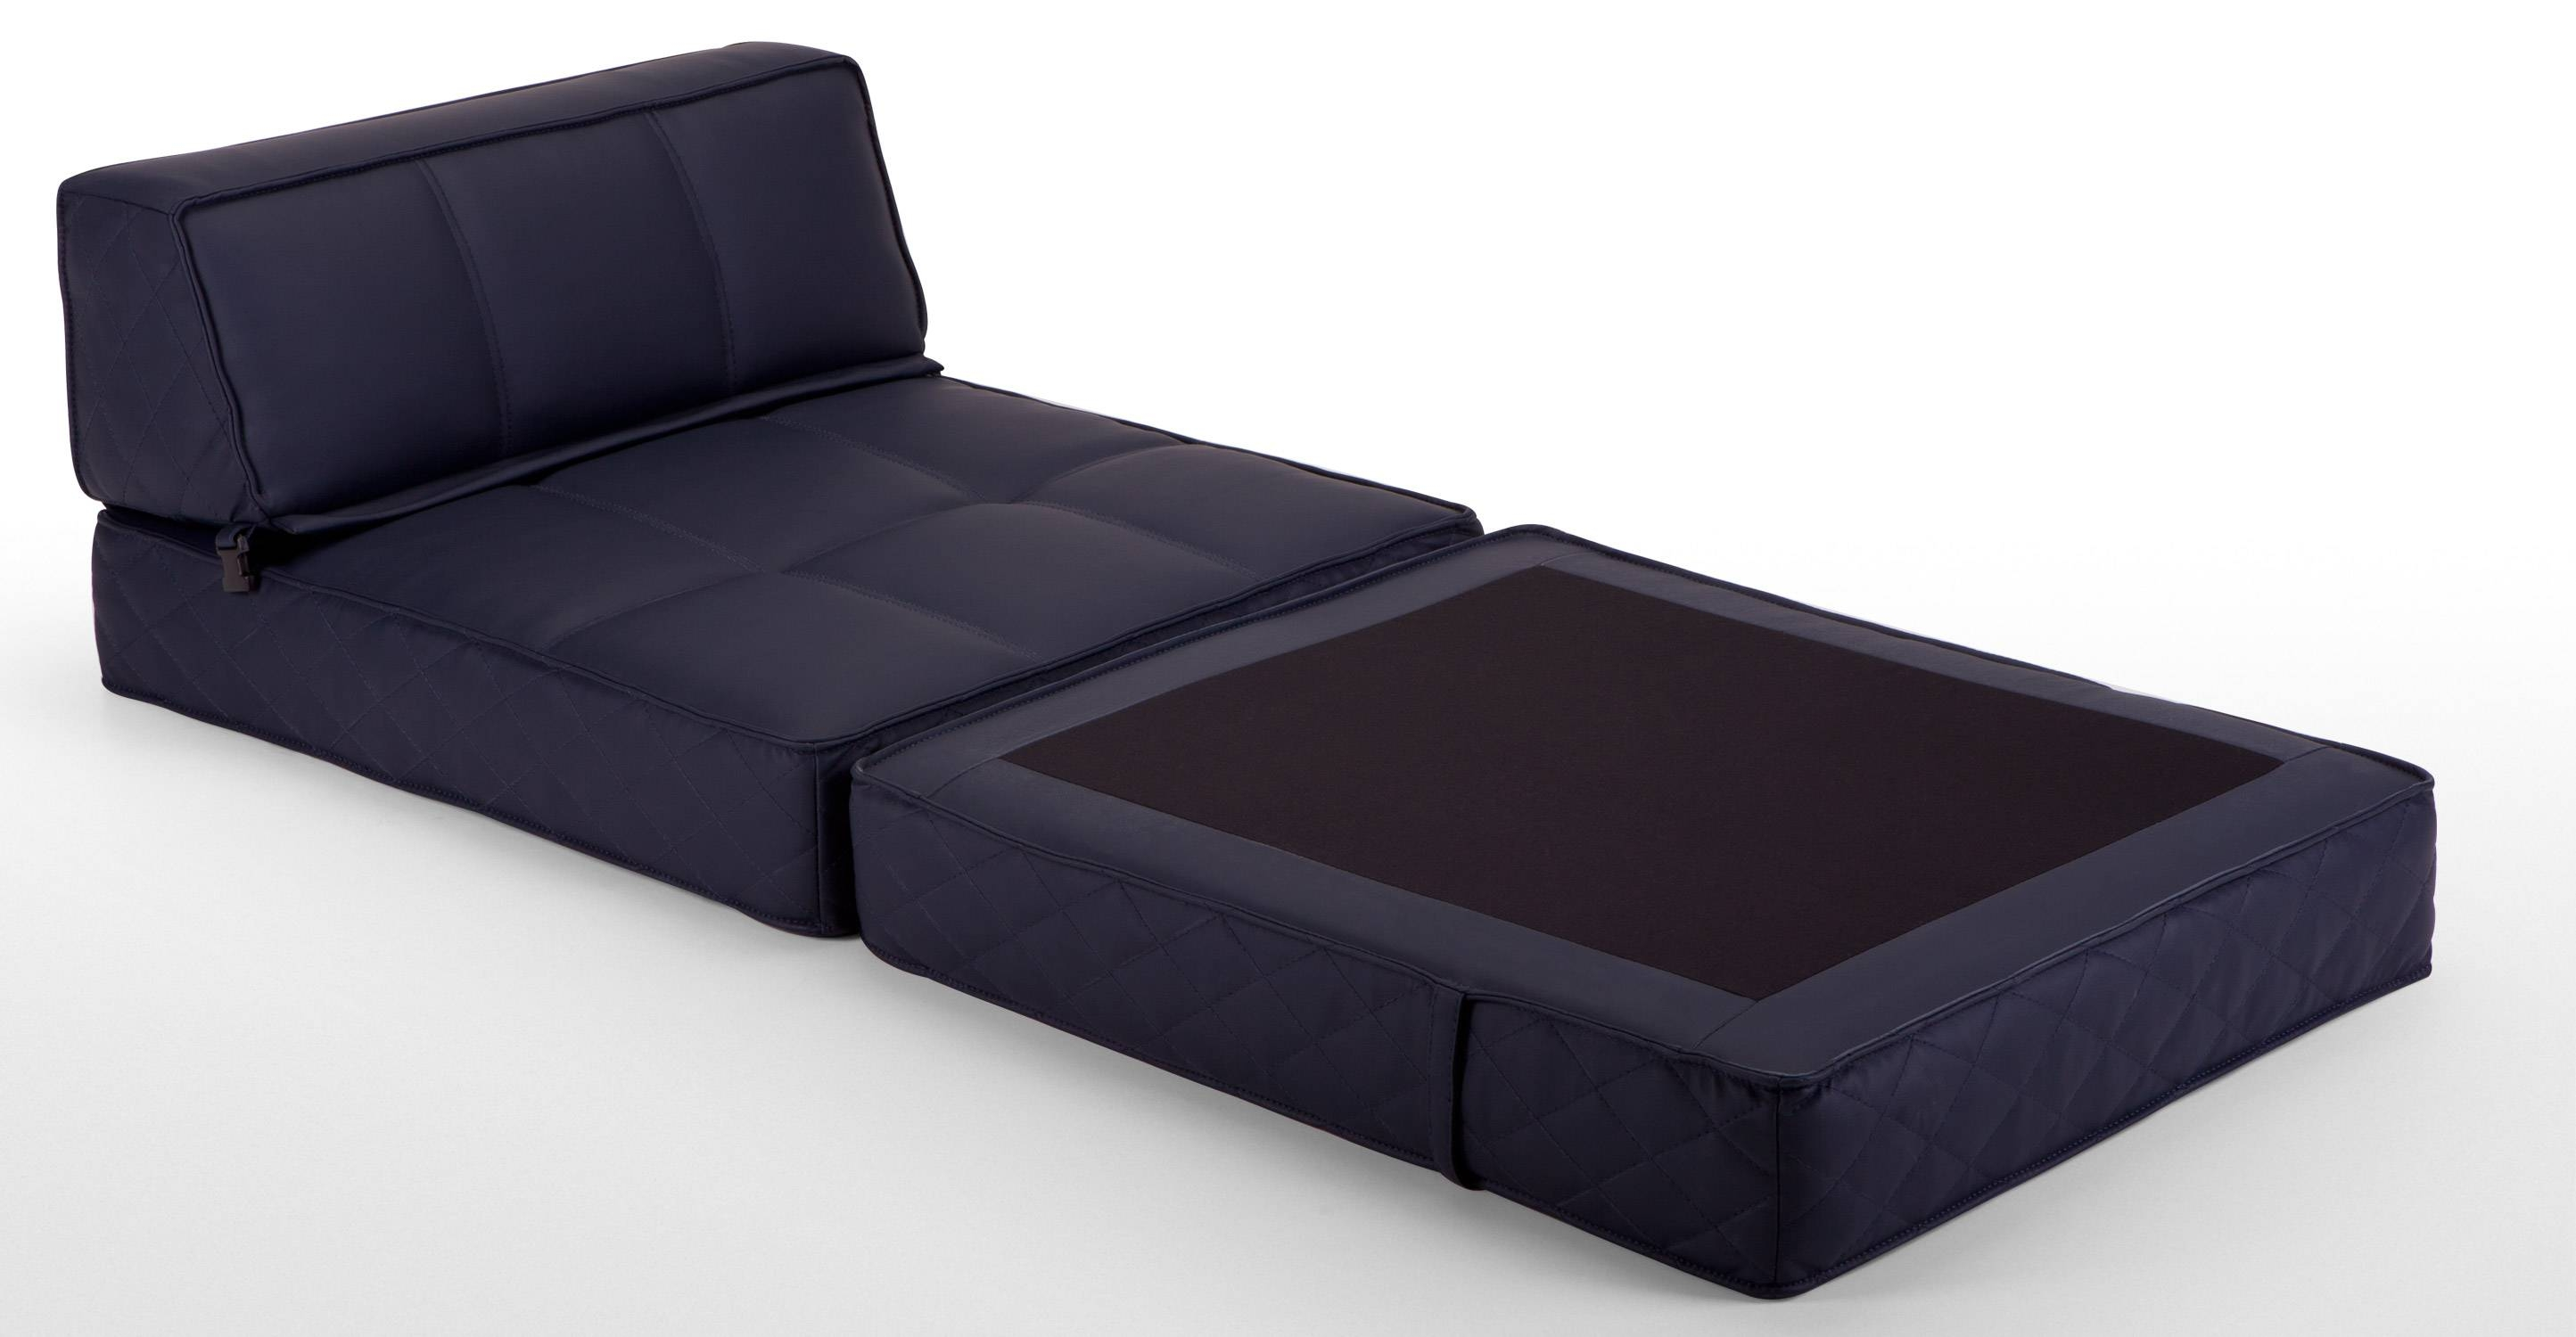 14 Fold Out Sofa Beds | Auto-Auctions for Folding Sofa Chairs (Image 1 of 30)